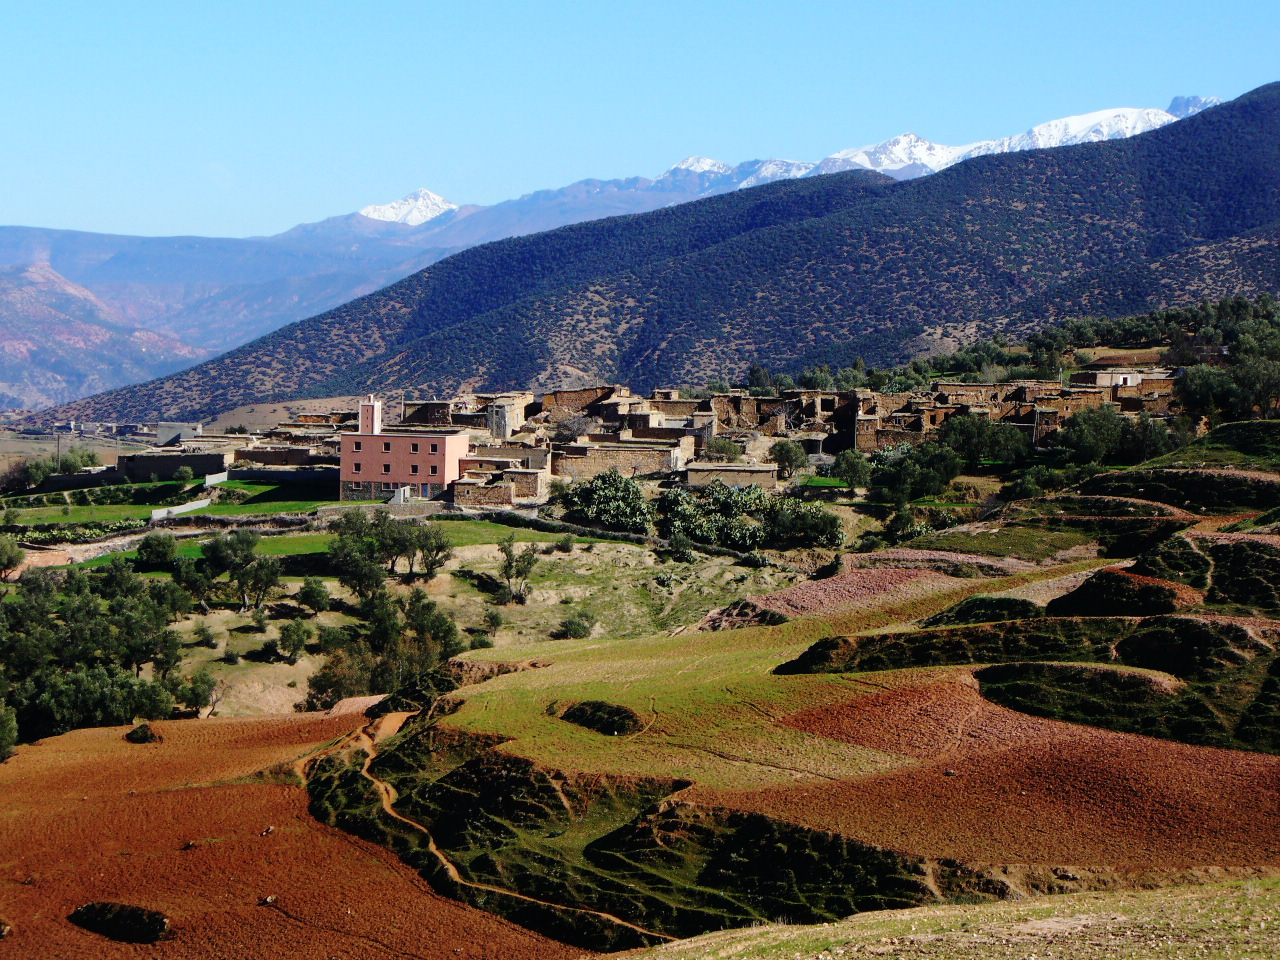 A Berber village in the High Atlas Mountains